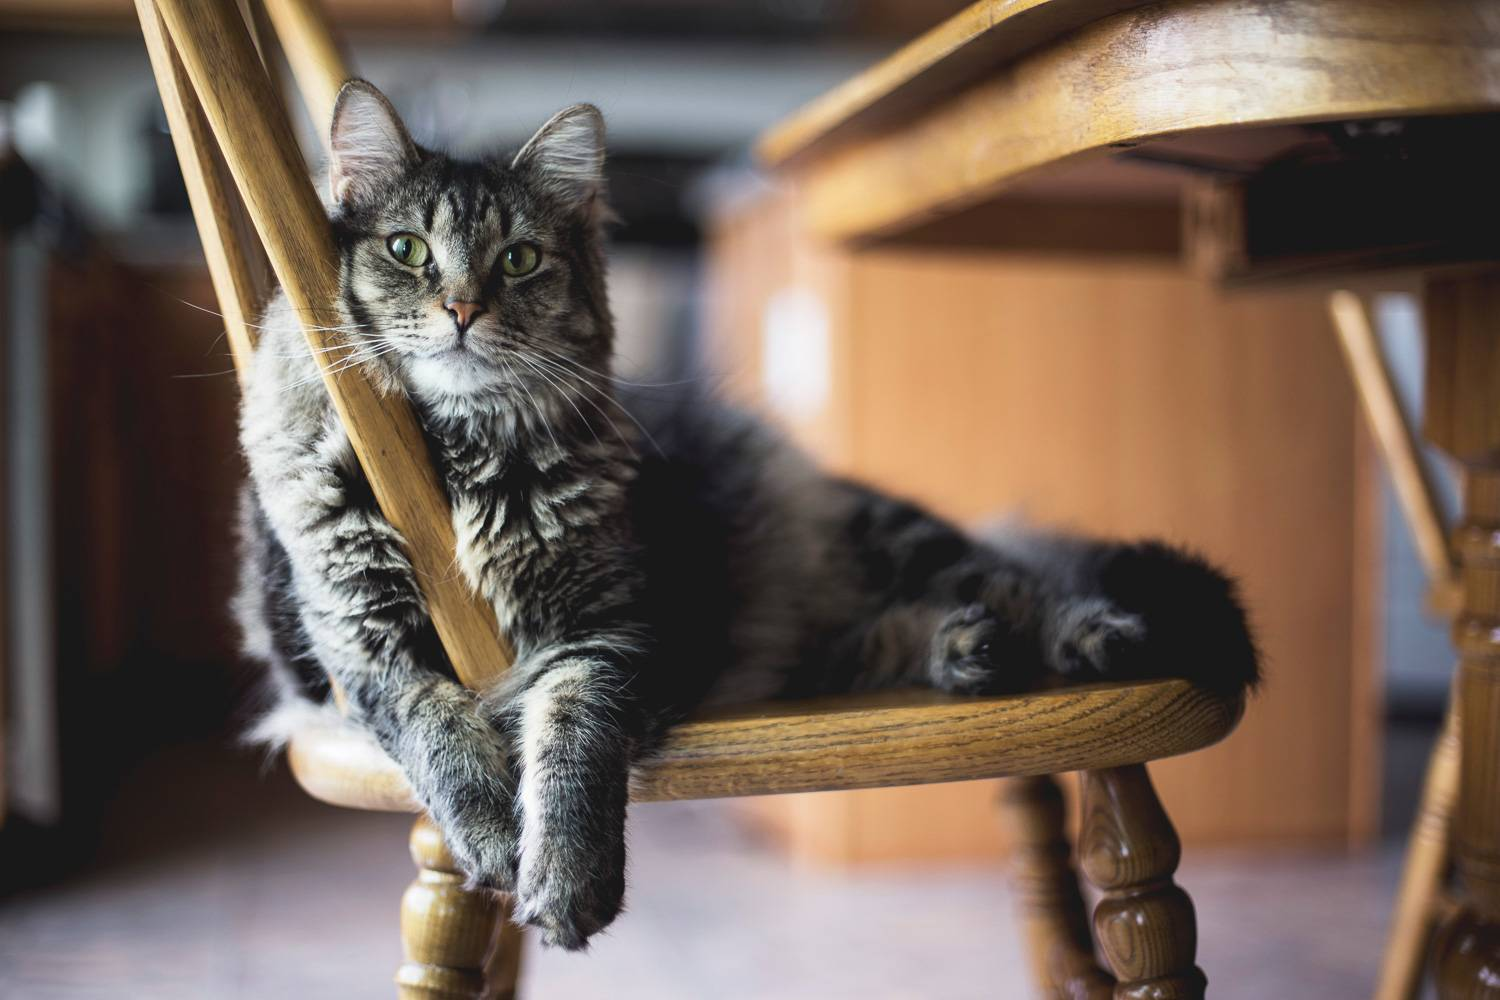 Image of a furry gray and black cat lounging on a chair (Image credit: Unsplash)